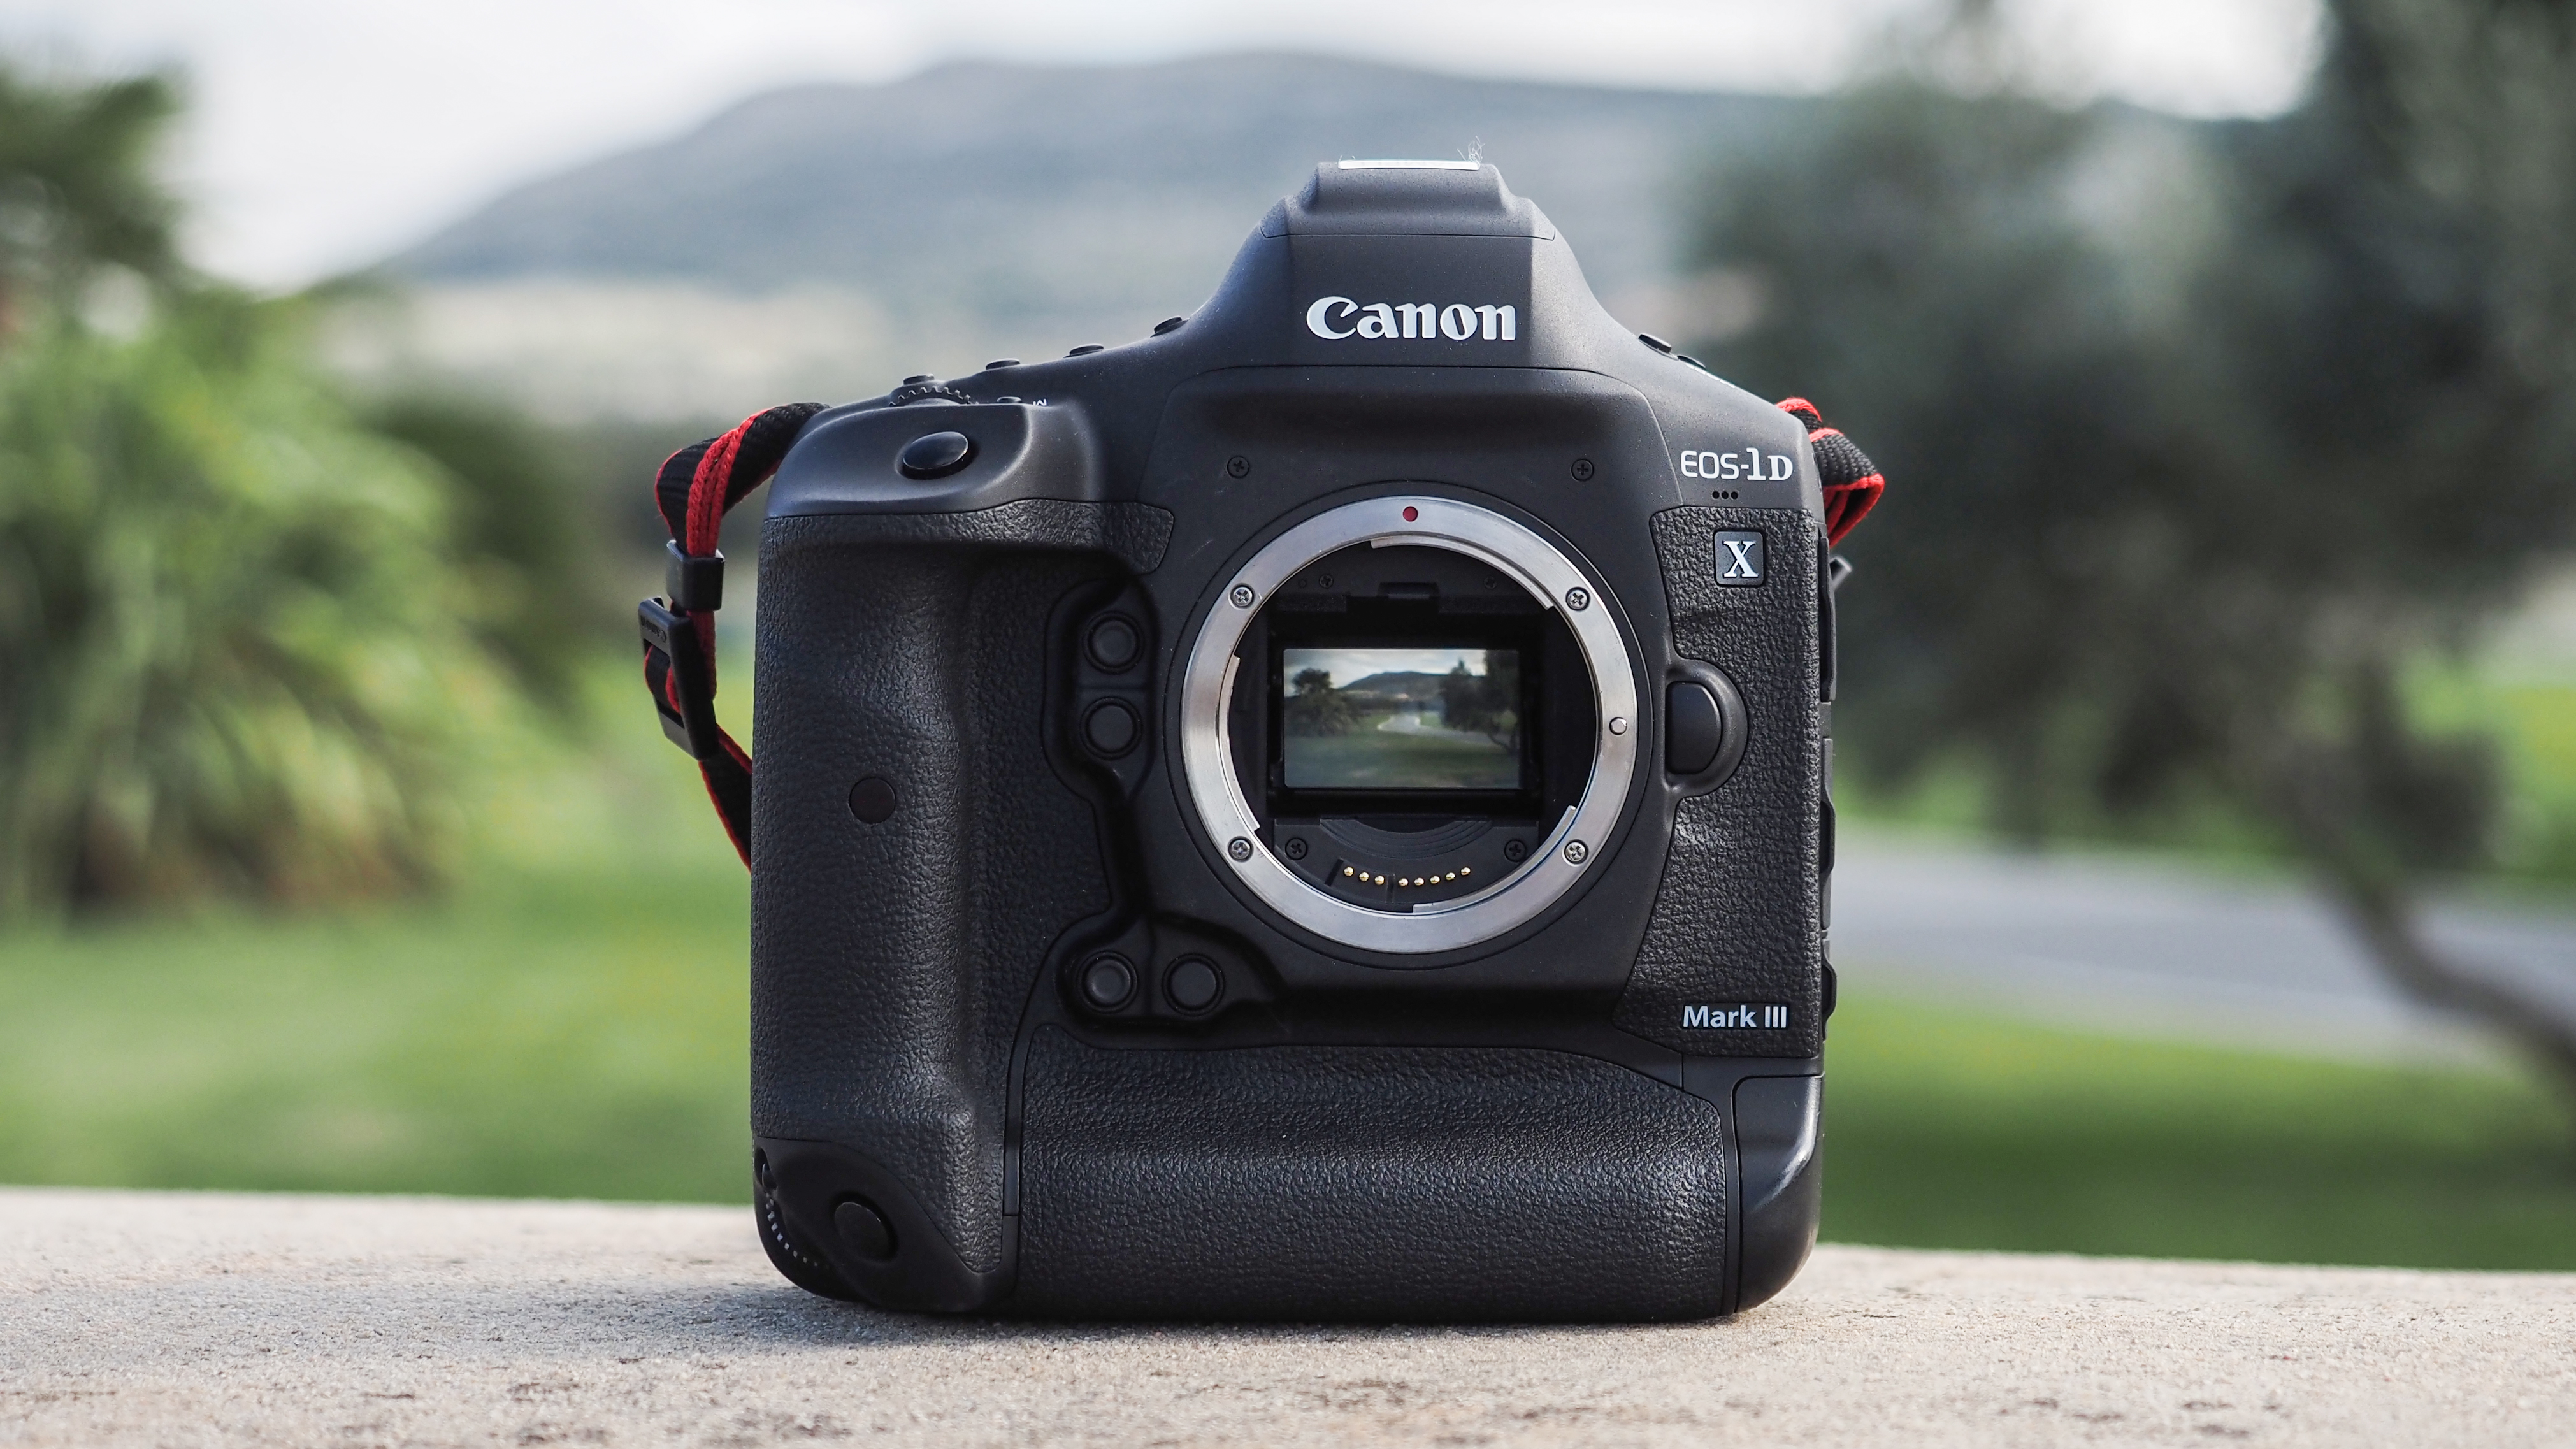 Best Dslr Cameras 2021 The best professional cameras in 2020 | Digital Camera World